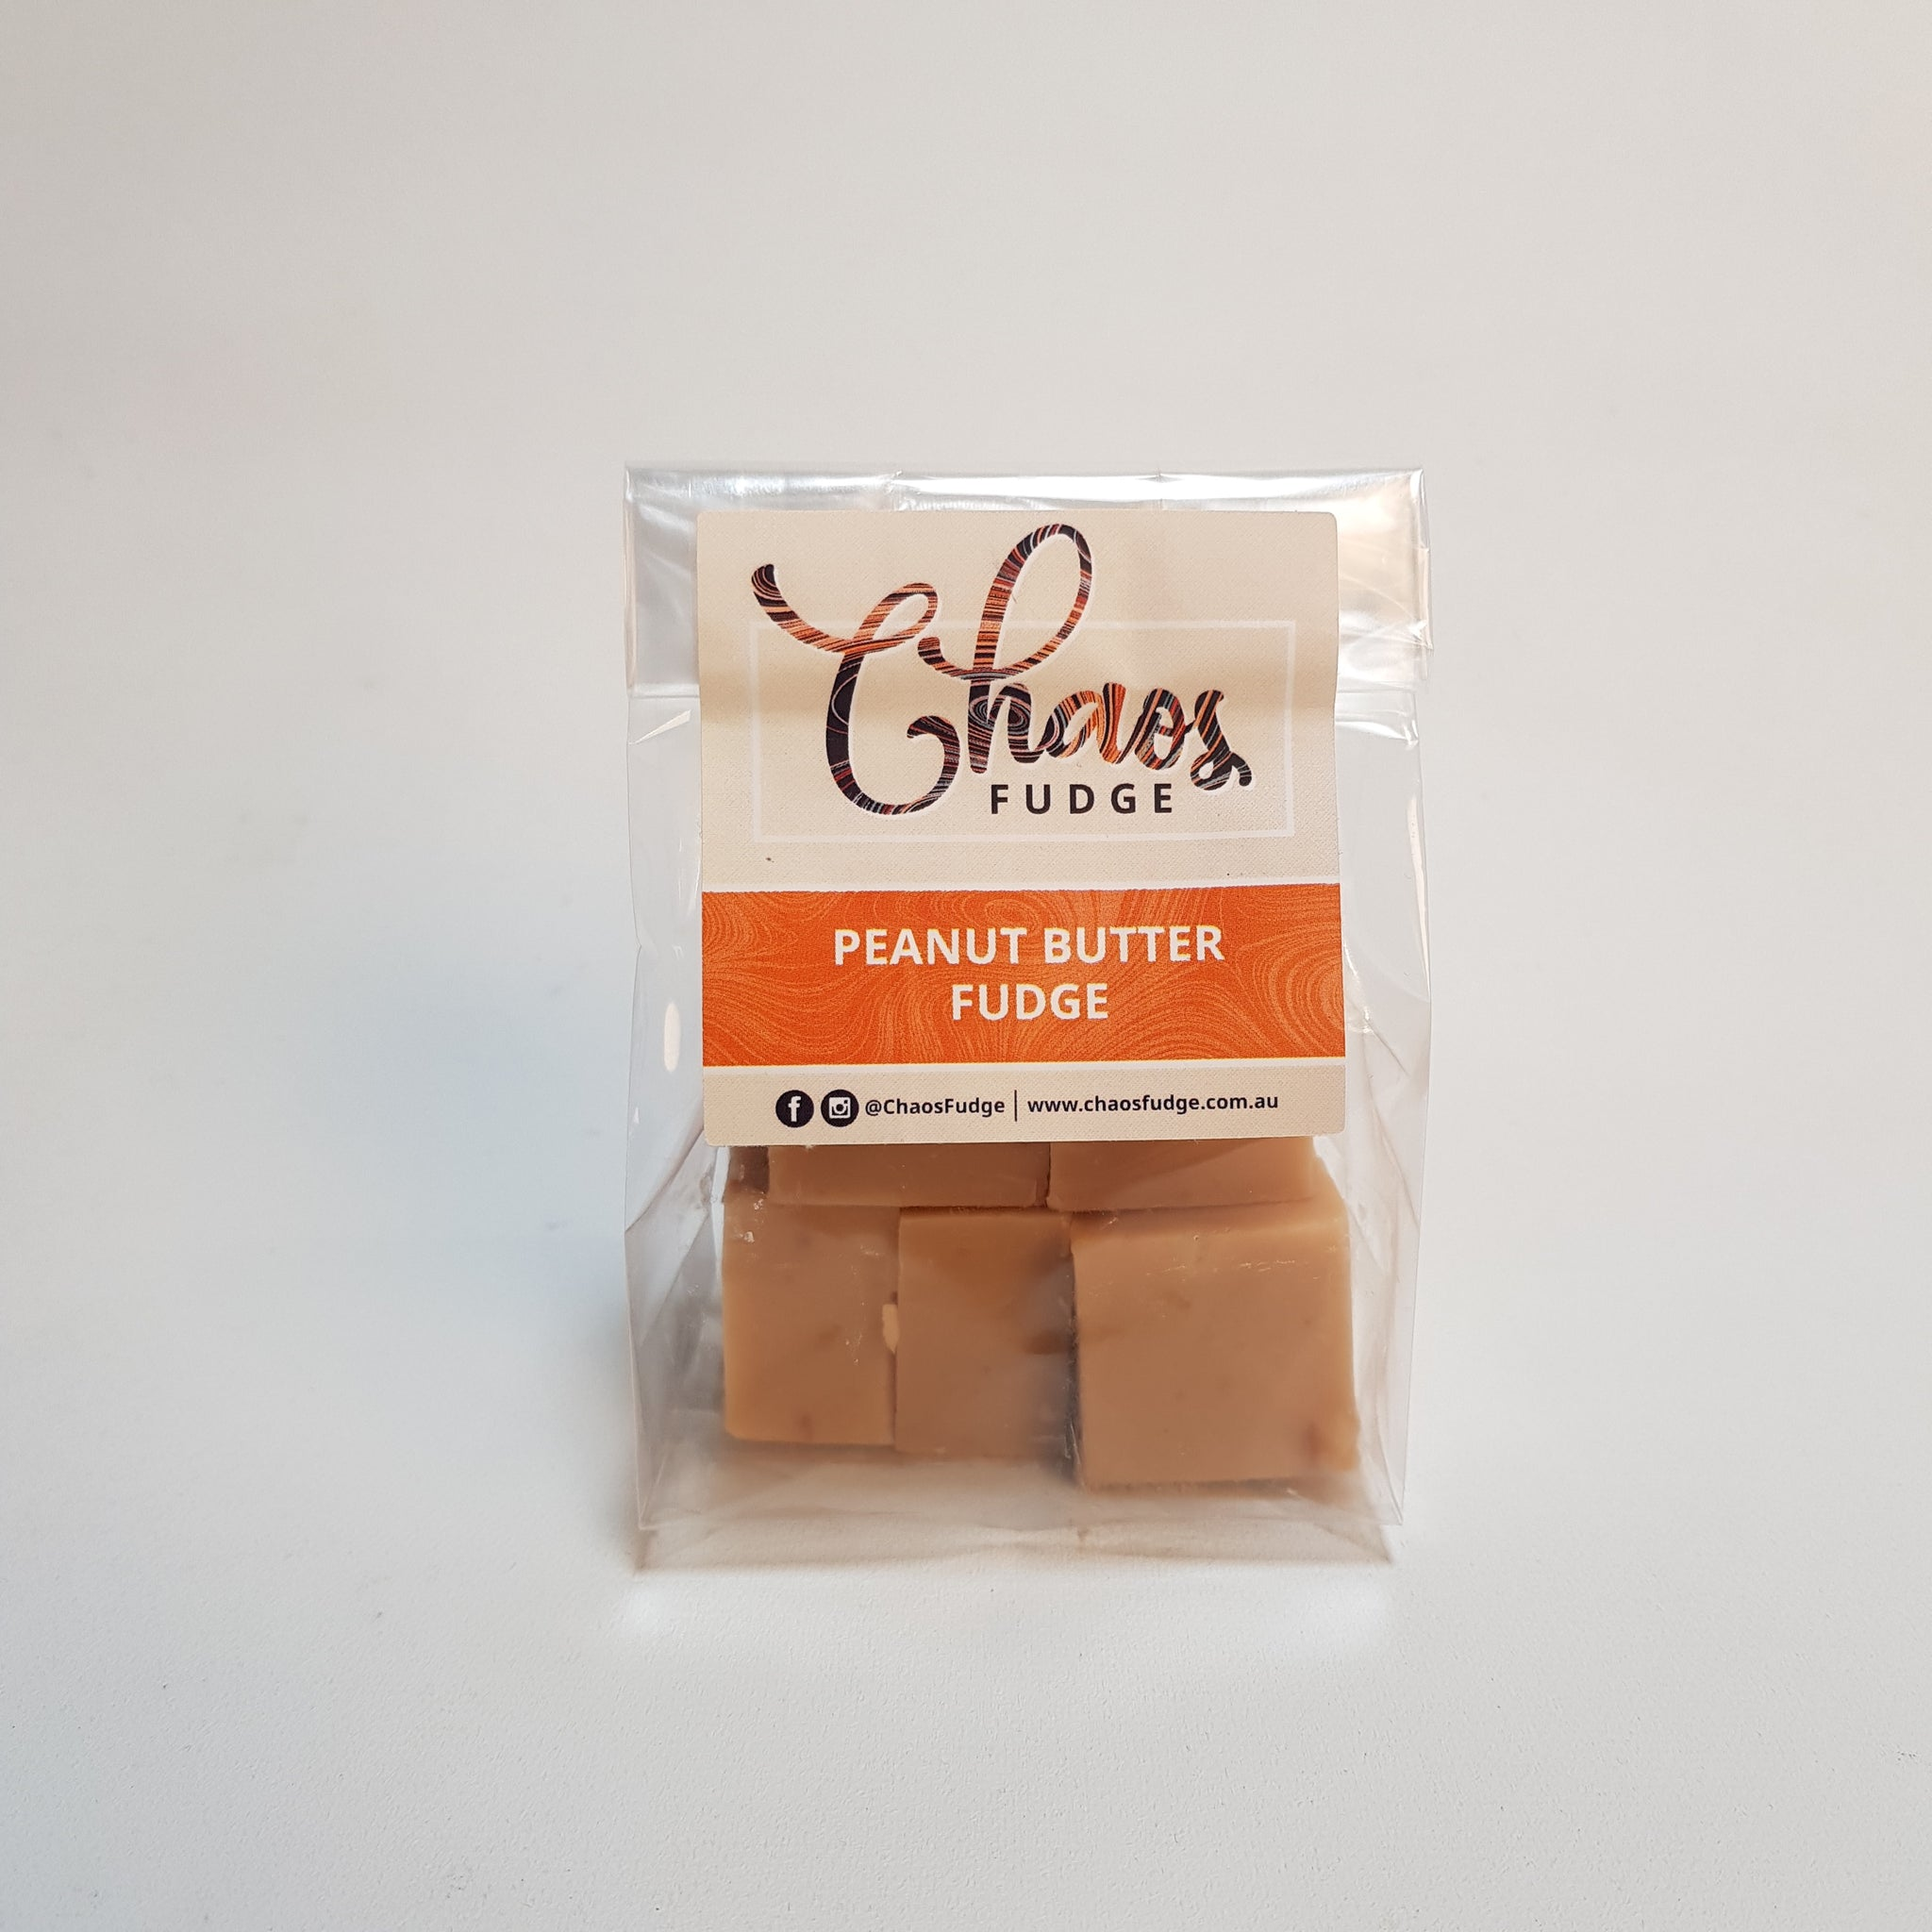 Chaos Peanut Butter Fudge